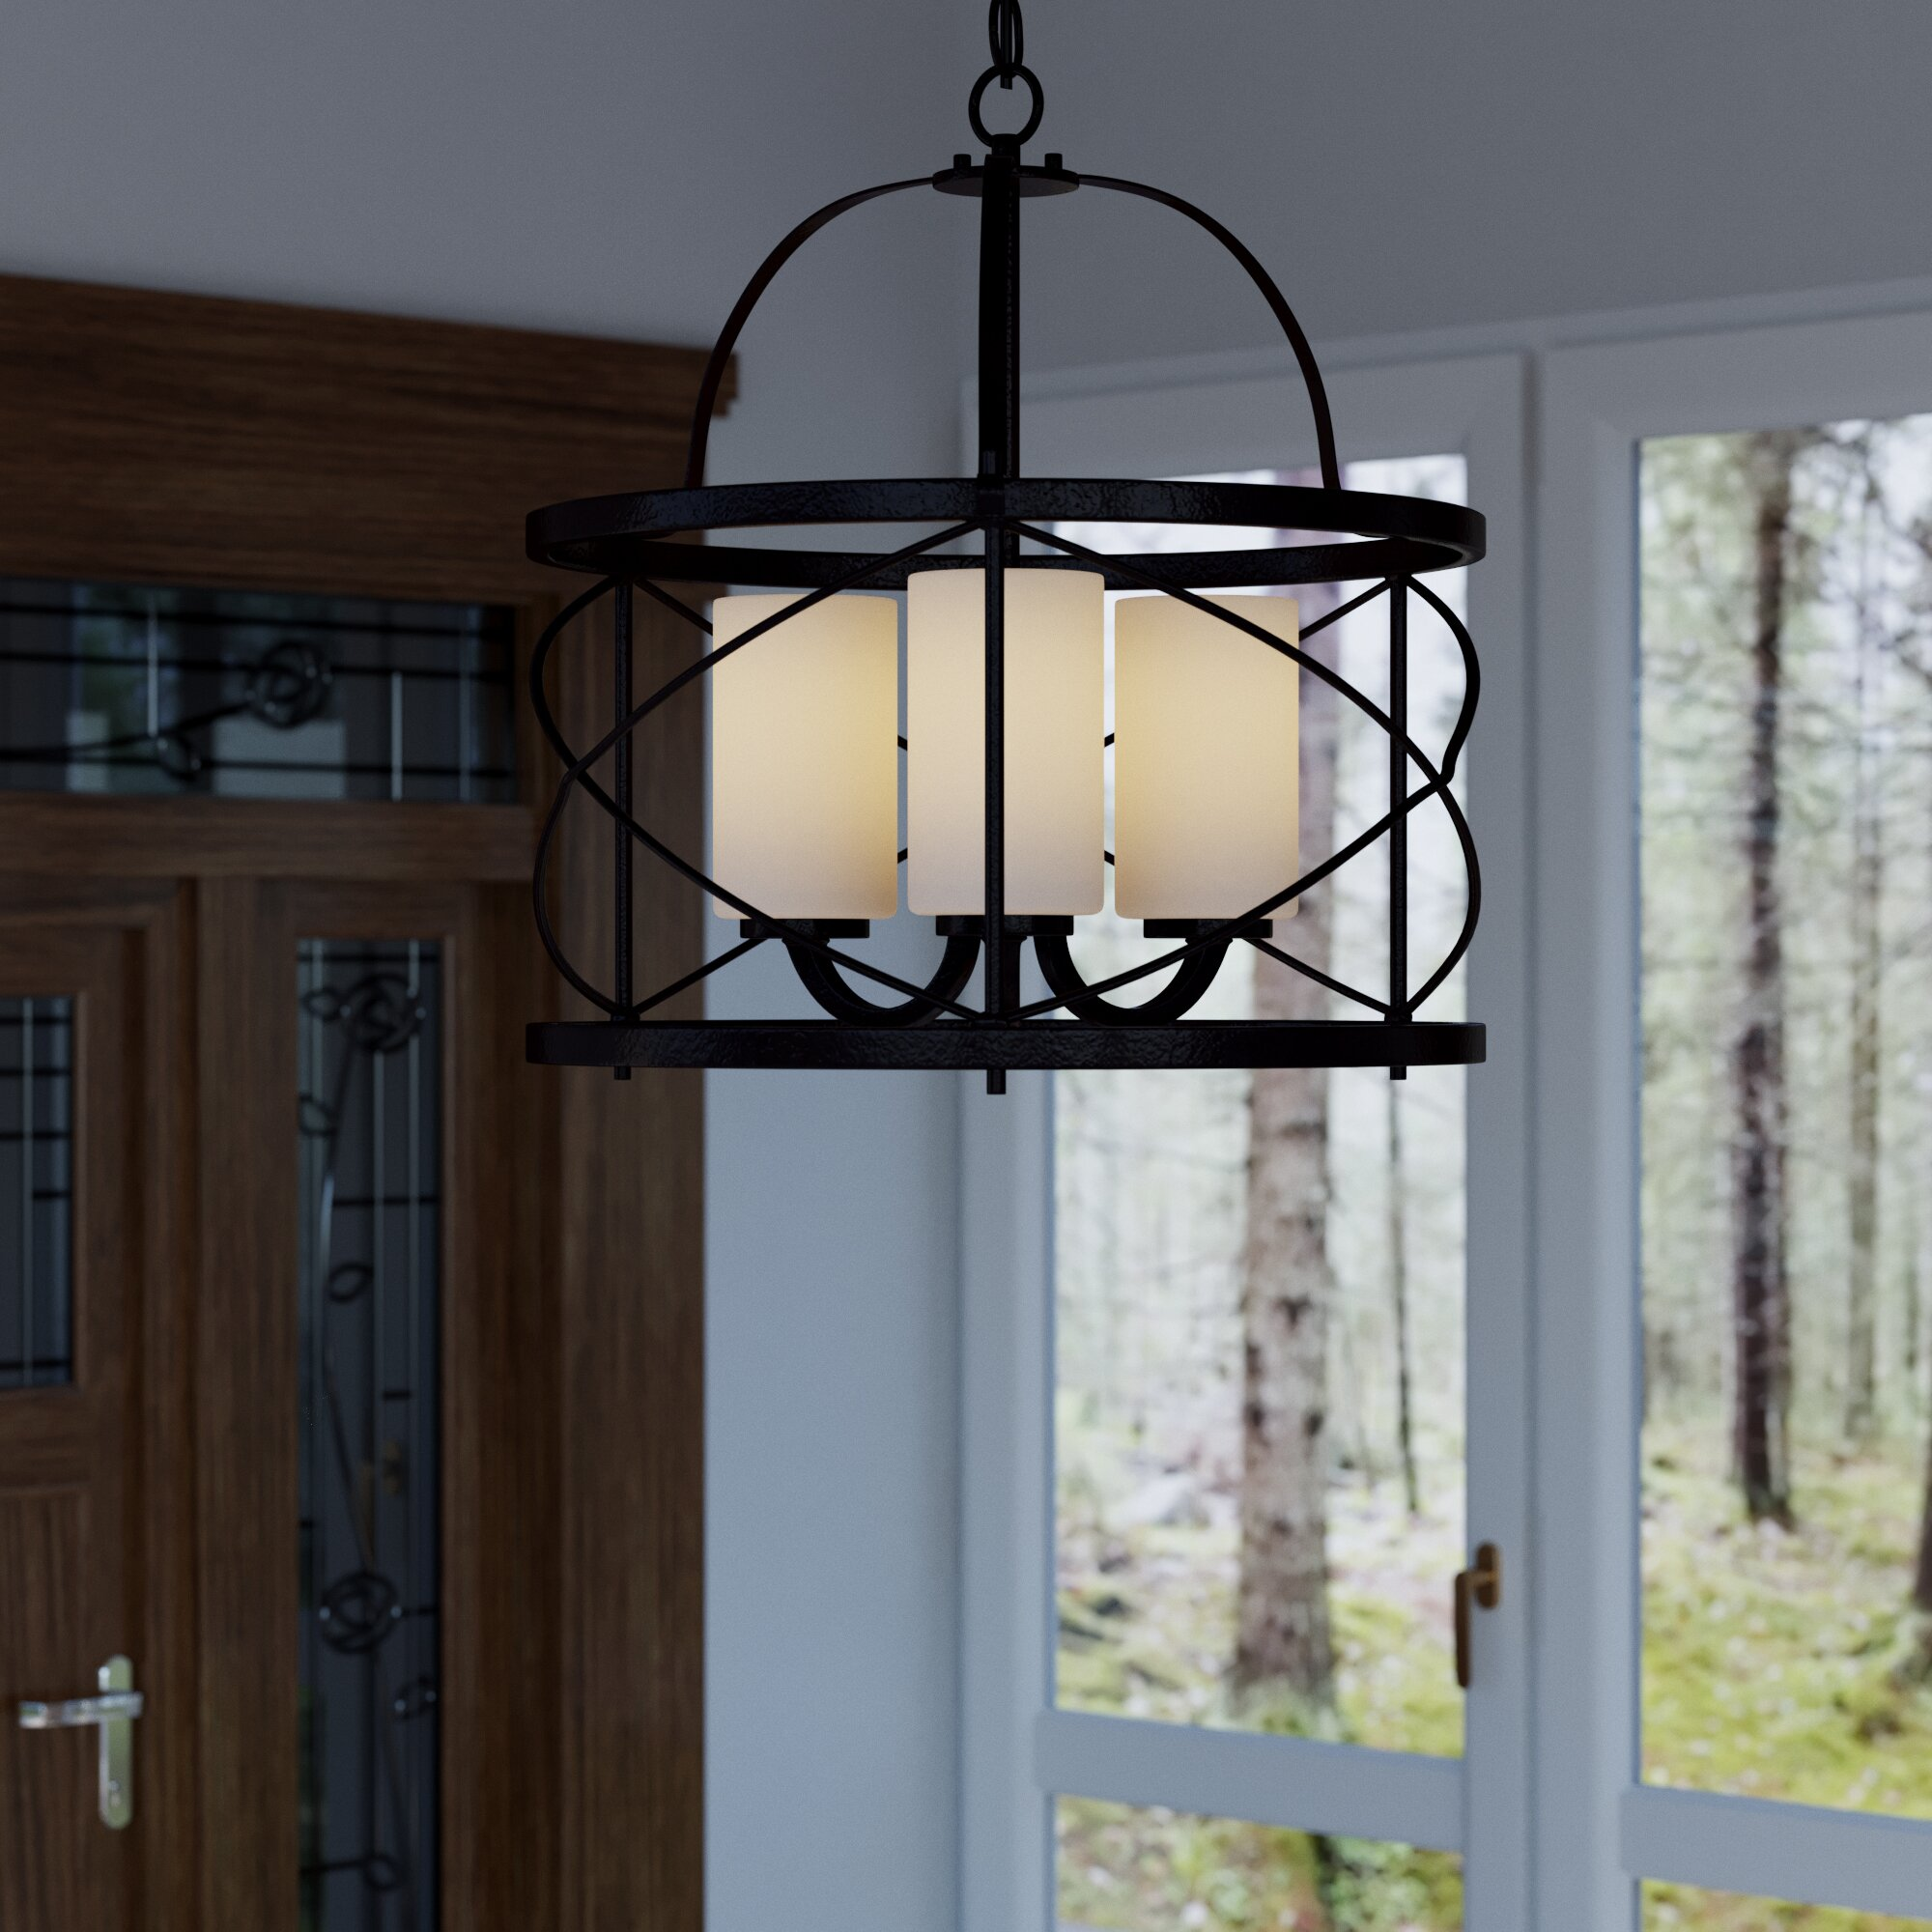 Foyer Ceiling Queen : Darby home co farrier light foyer pendant reviews